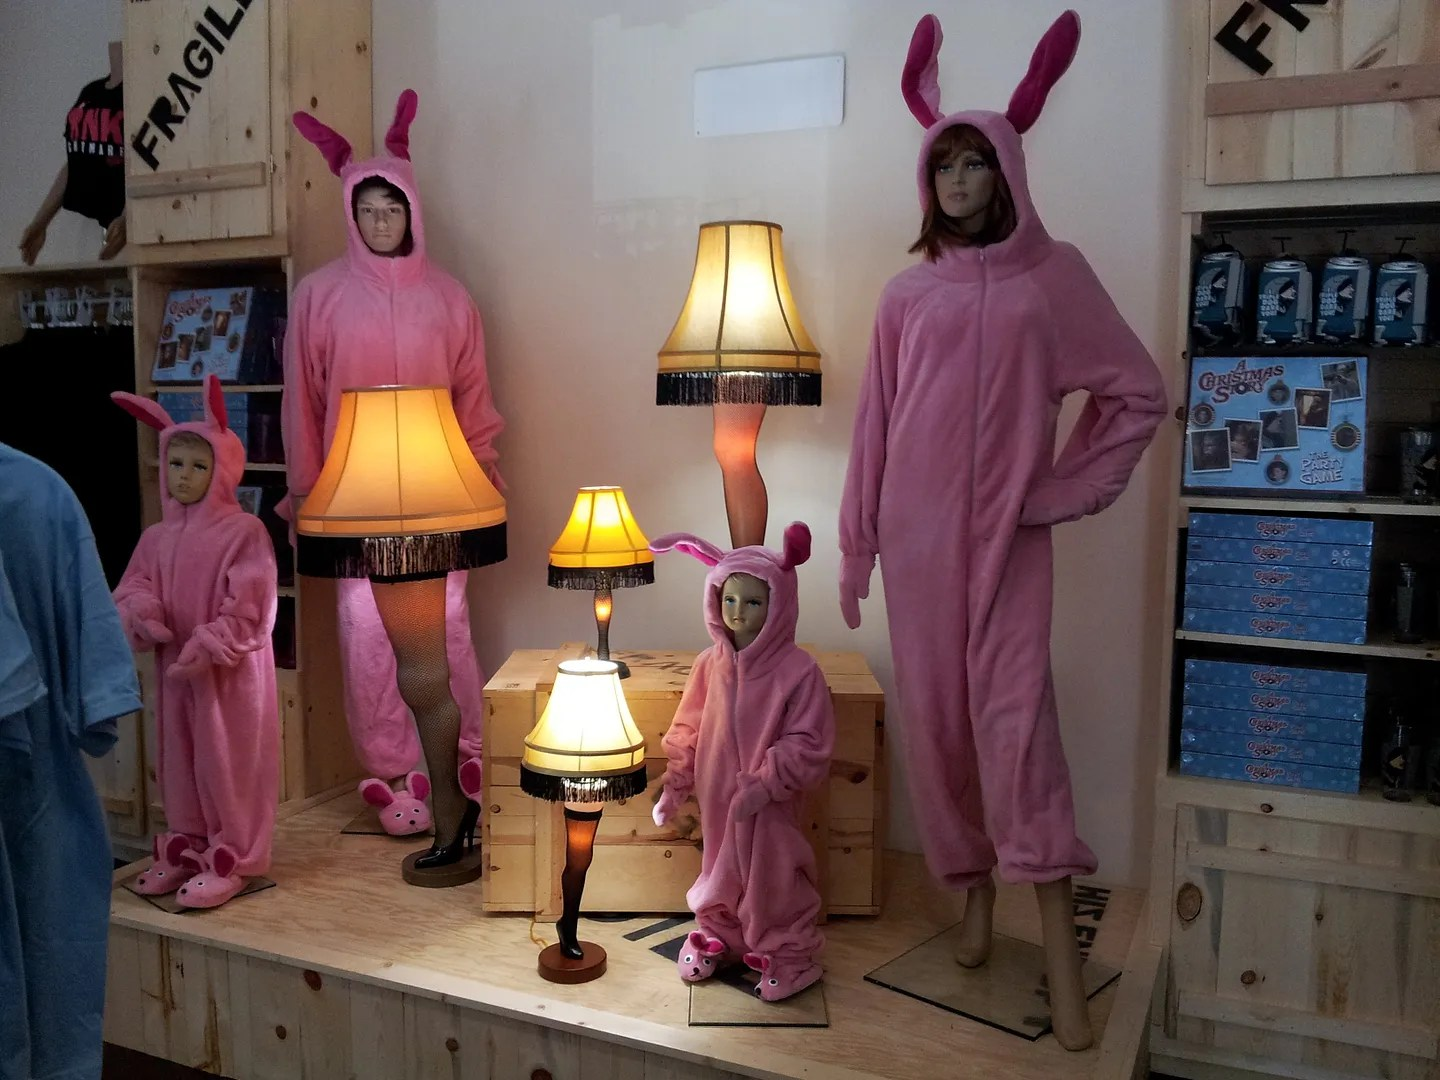 A Christmas Story, pink bunny suits, Cleveland